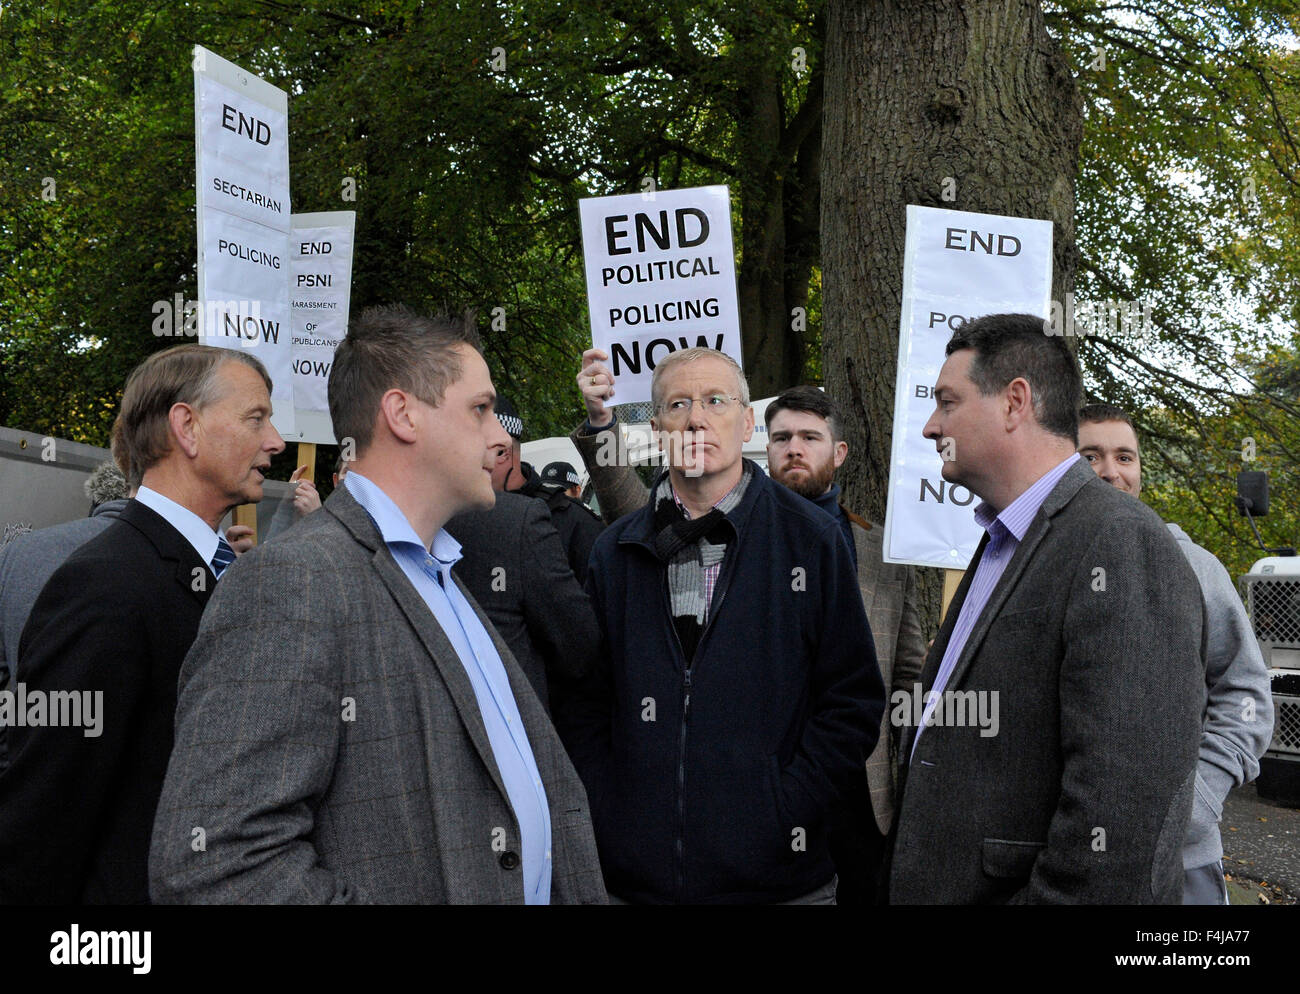 Democratic Unionist Party (DUP) MP for East Londonderry, Gregory Campbell, observing a dissident republican protest - Stock Image